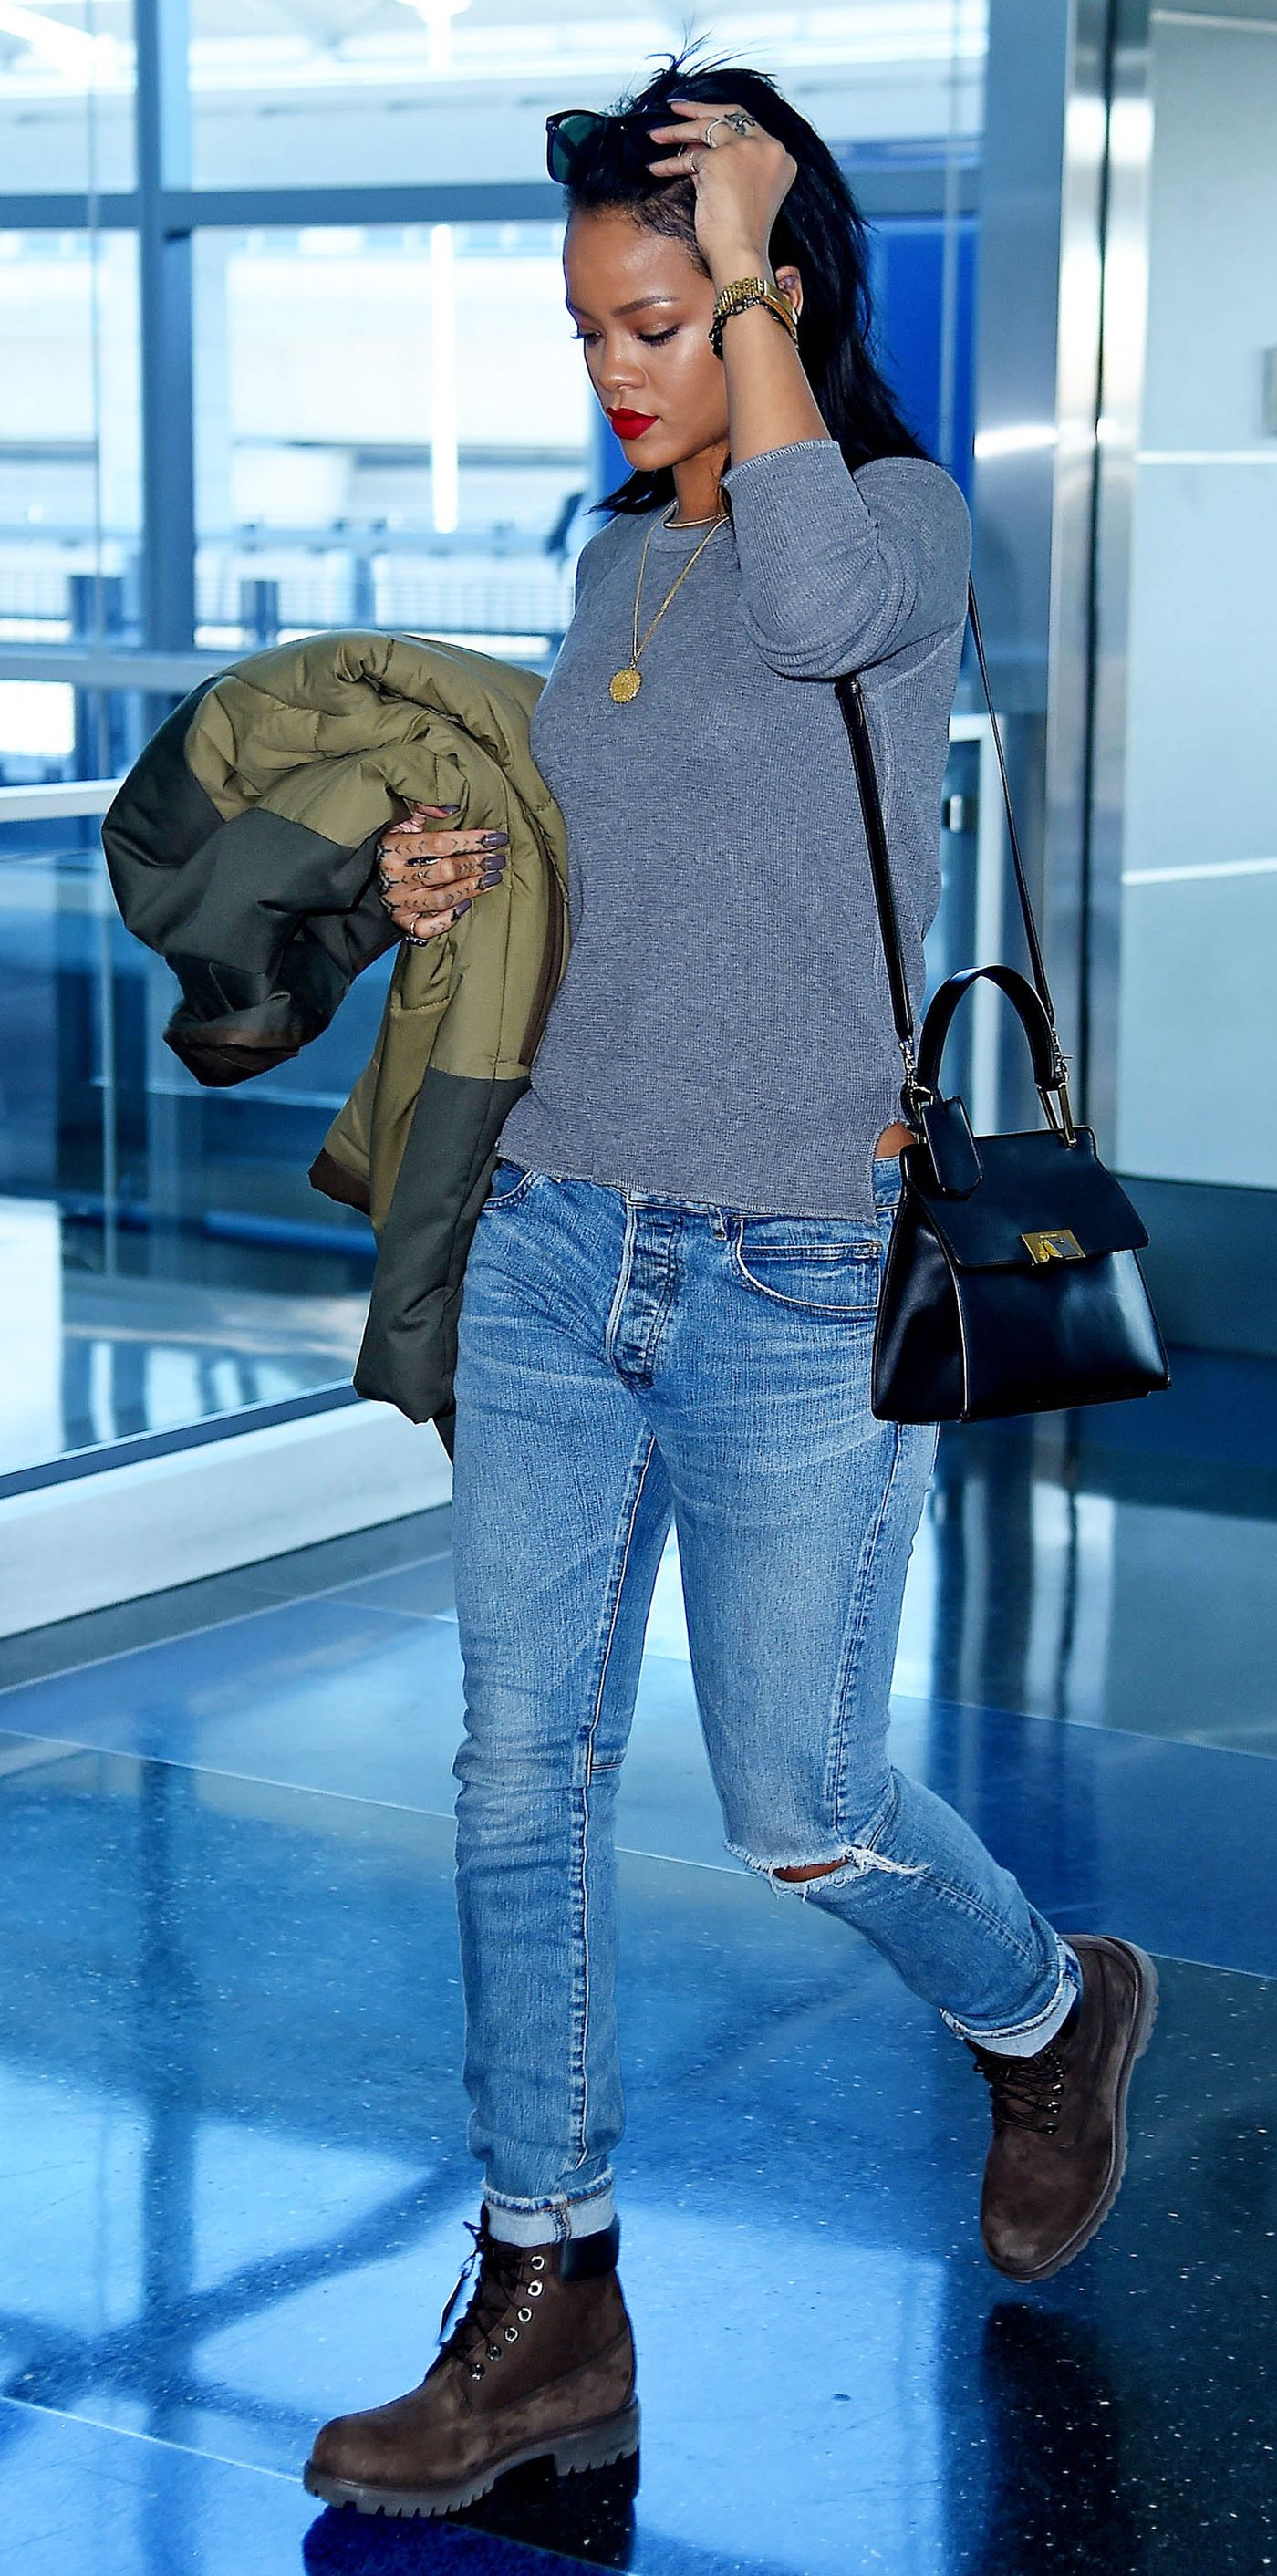 f1171878c14 Celebrities Obsessed with Their Timberland Boots | Wear | Timberland ...